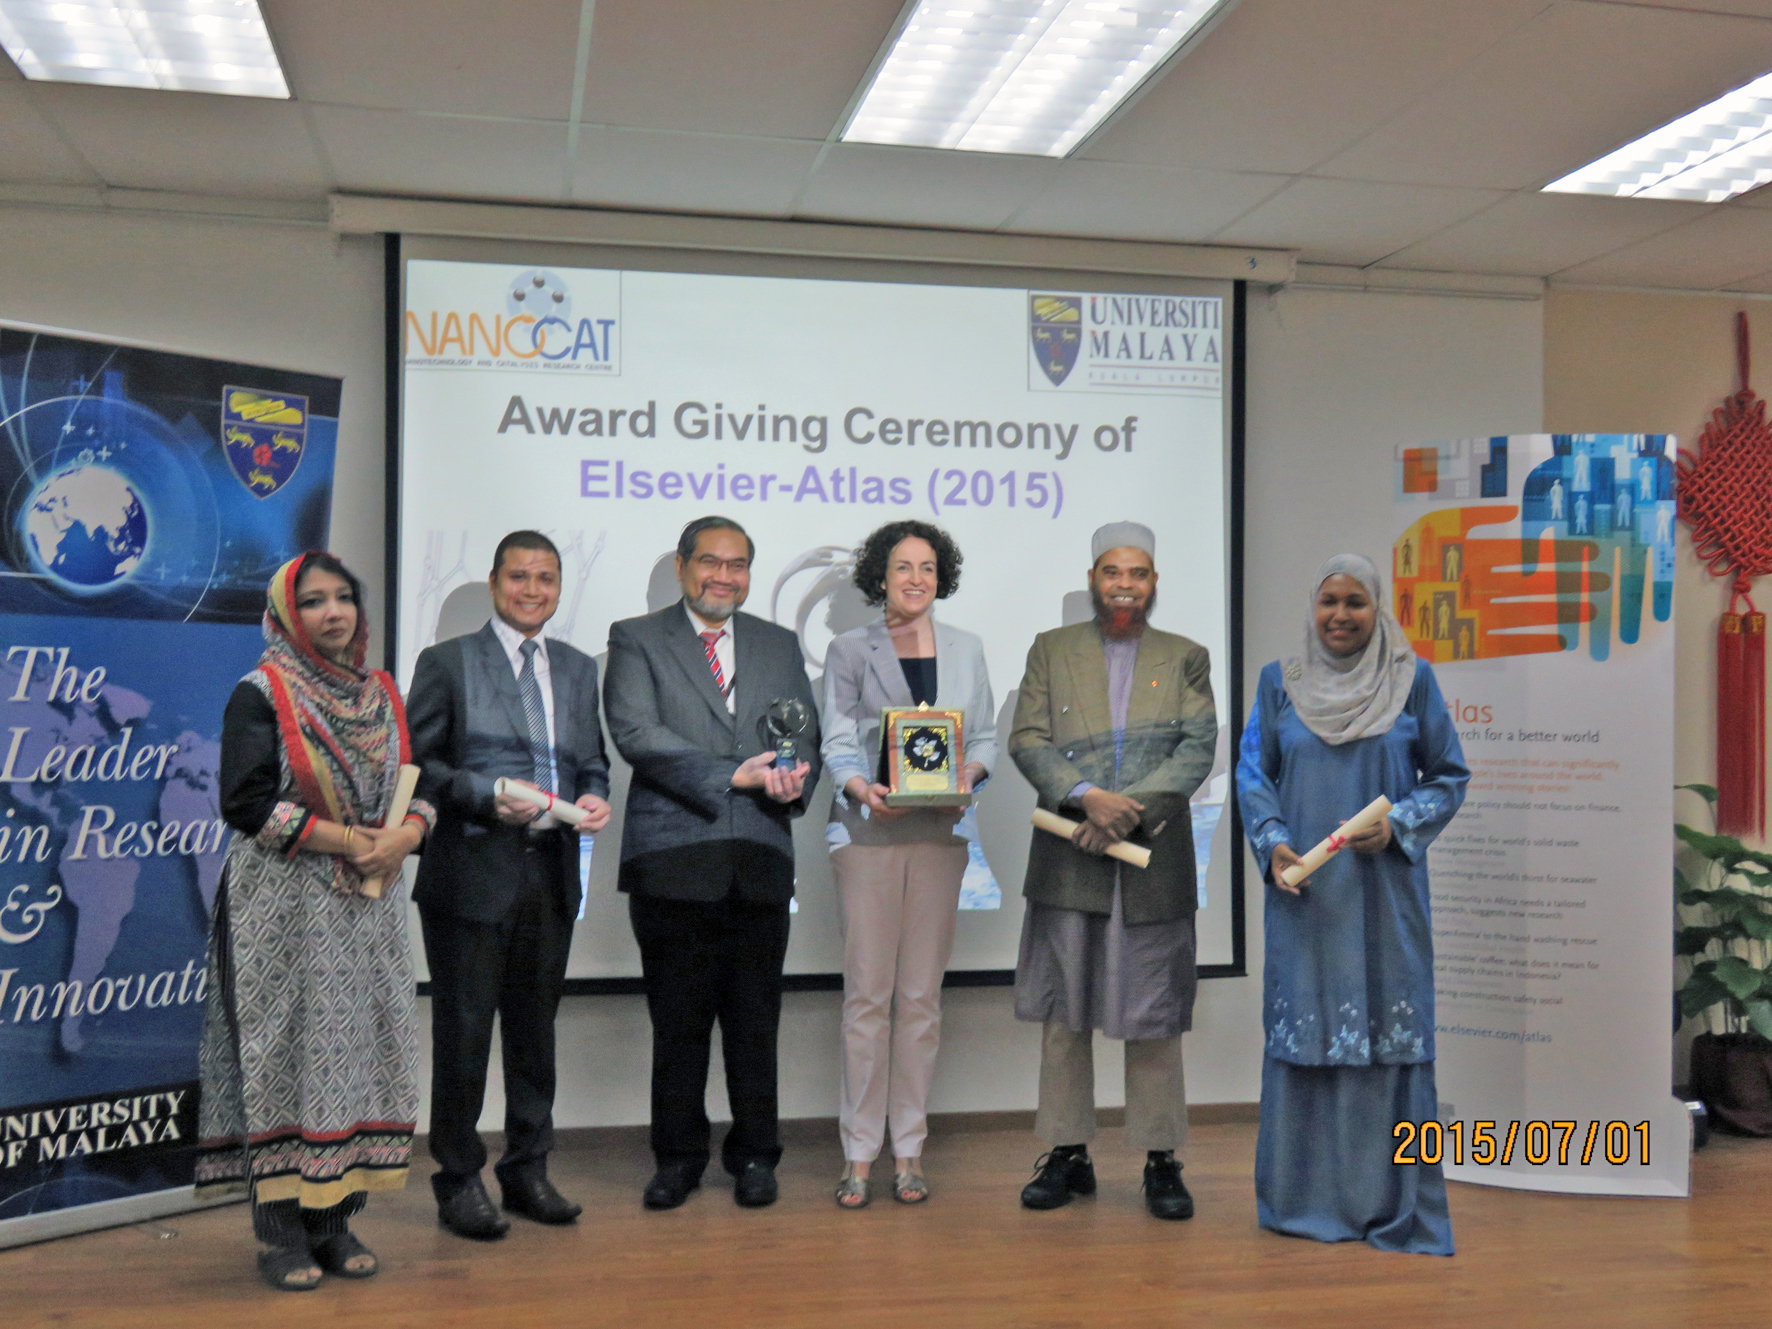 Atlas Award ceremony, University of Malaya, 1 July 2015. From left to right: Zaira Zaman Chowdhury , Rasel Das, Awang Bulgiba Awang Mahmud, Deputy Vice Chancellor, University of Malaya, Louise Curtis, Publishing Director, Elsevier,  Md. Eaqub Ali, Sharifah Bee Abd Hamid